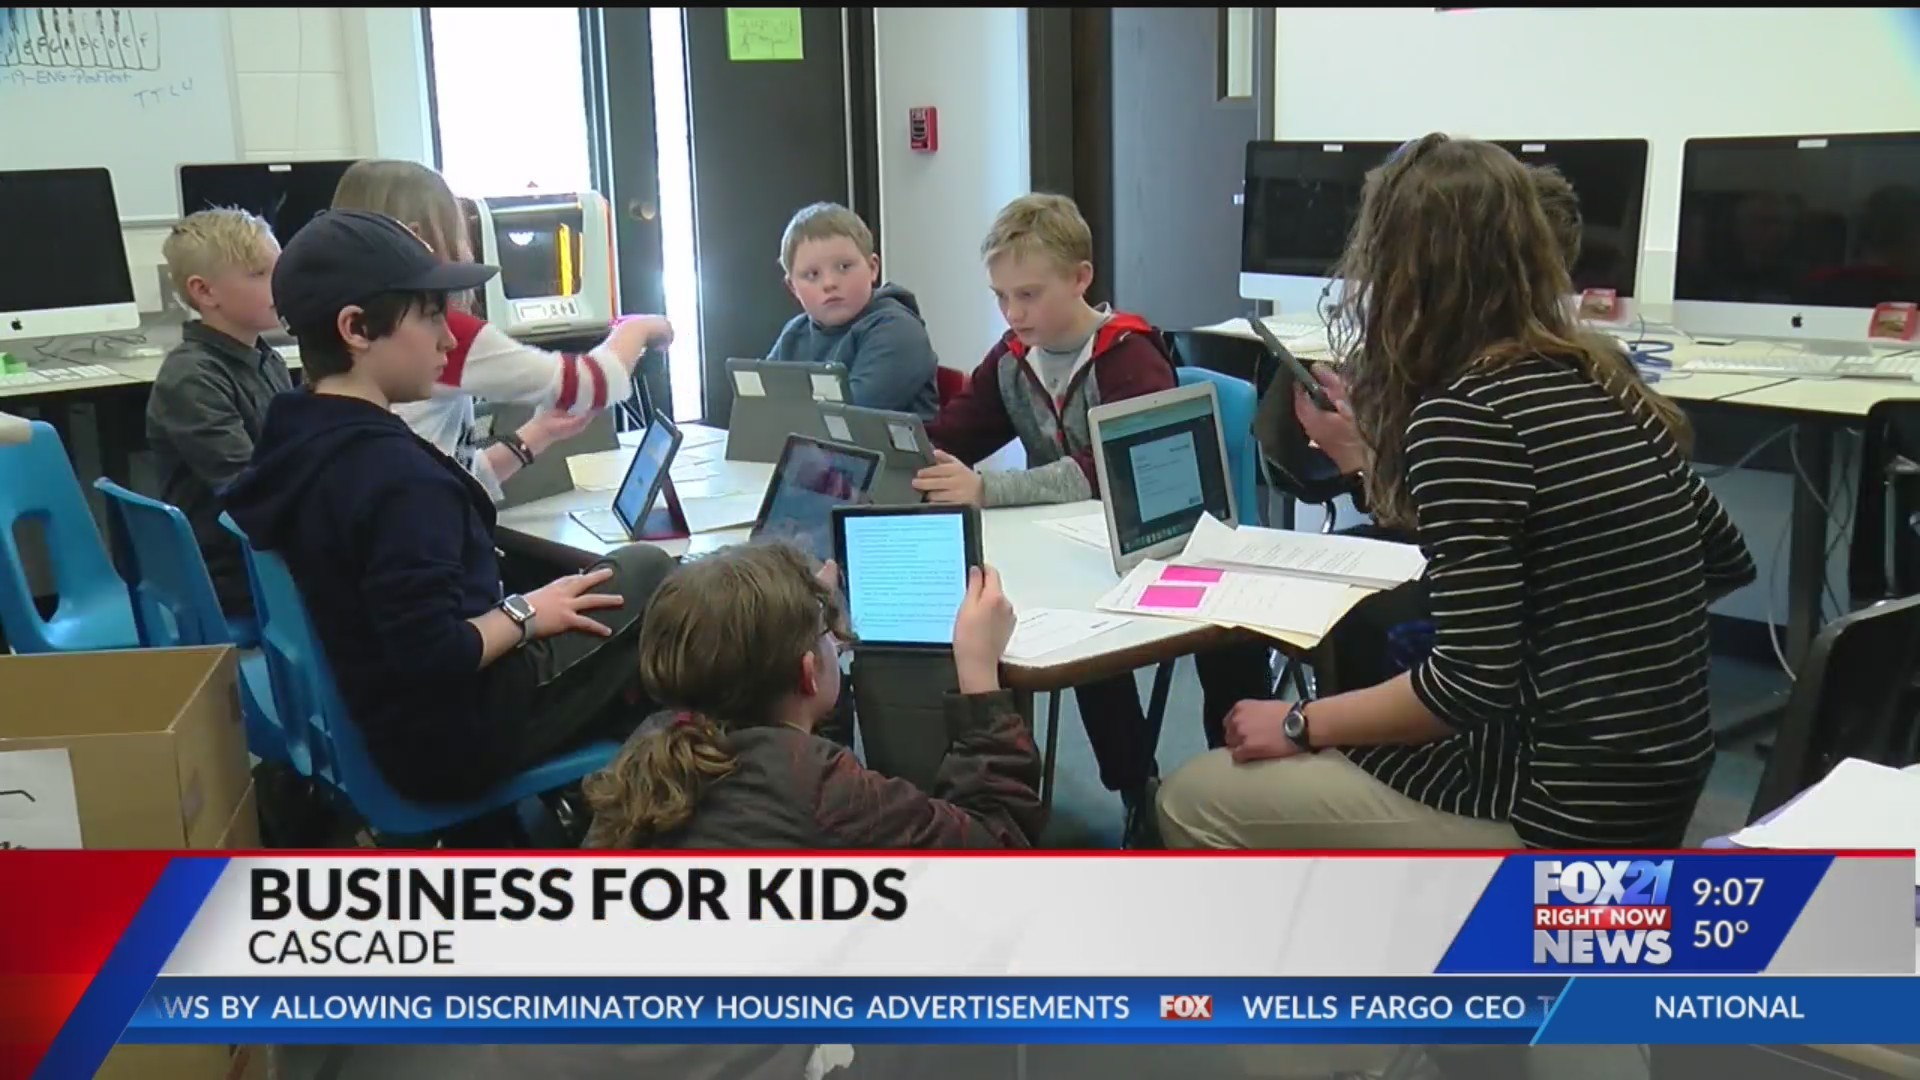 Cascade elementary school teaches students to build their own businesses